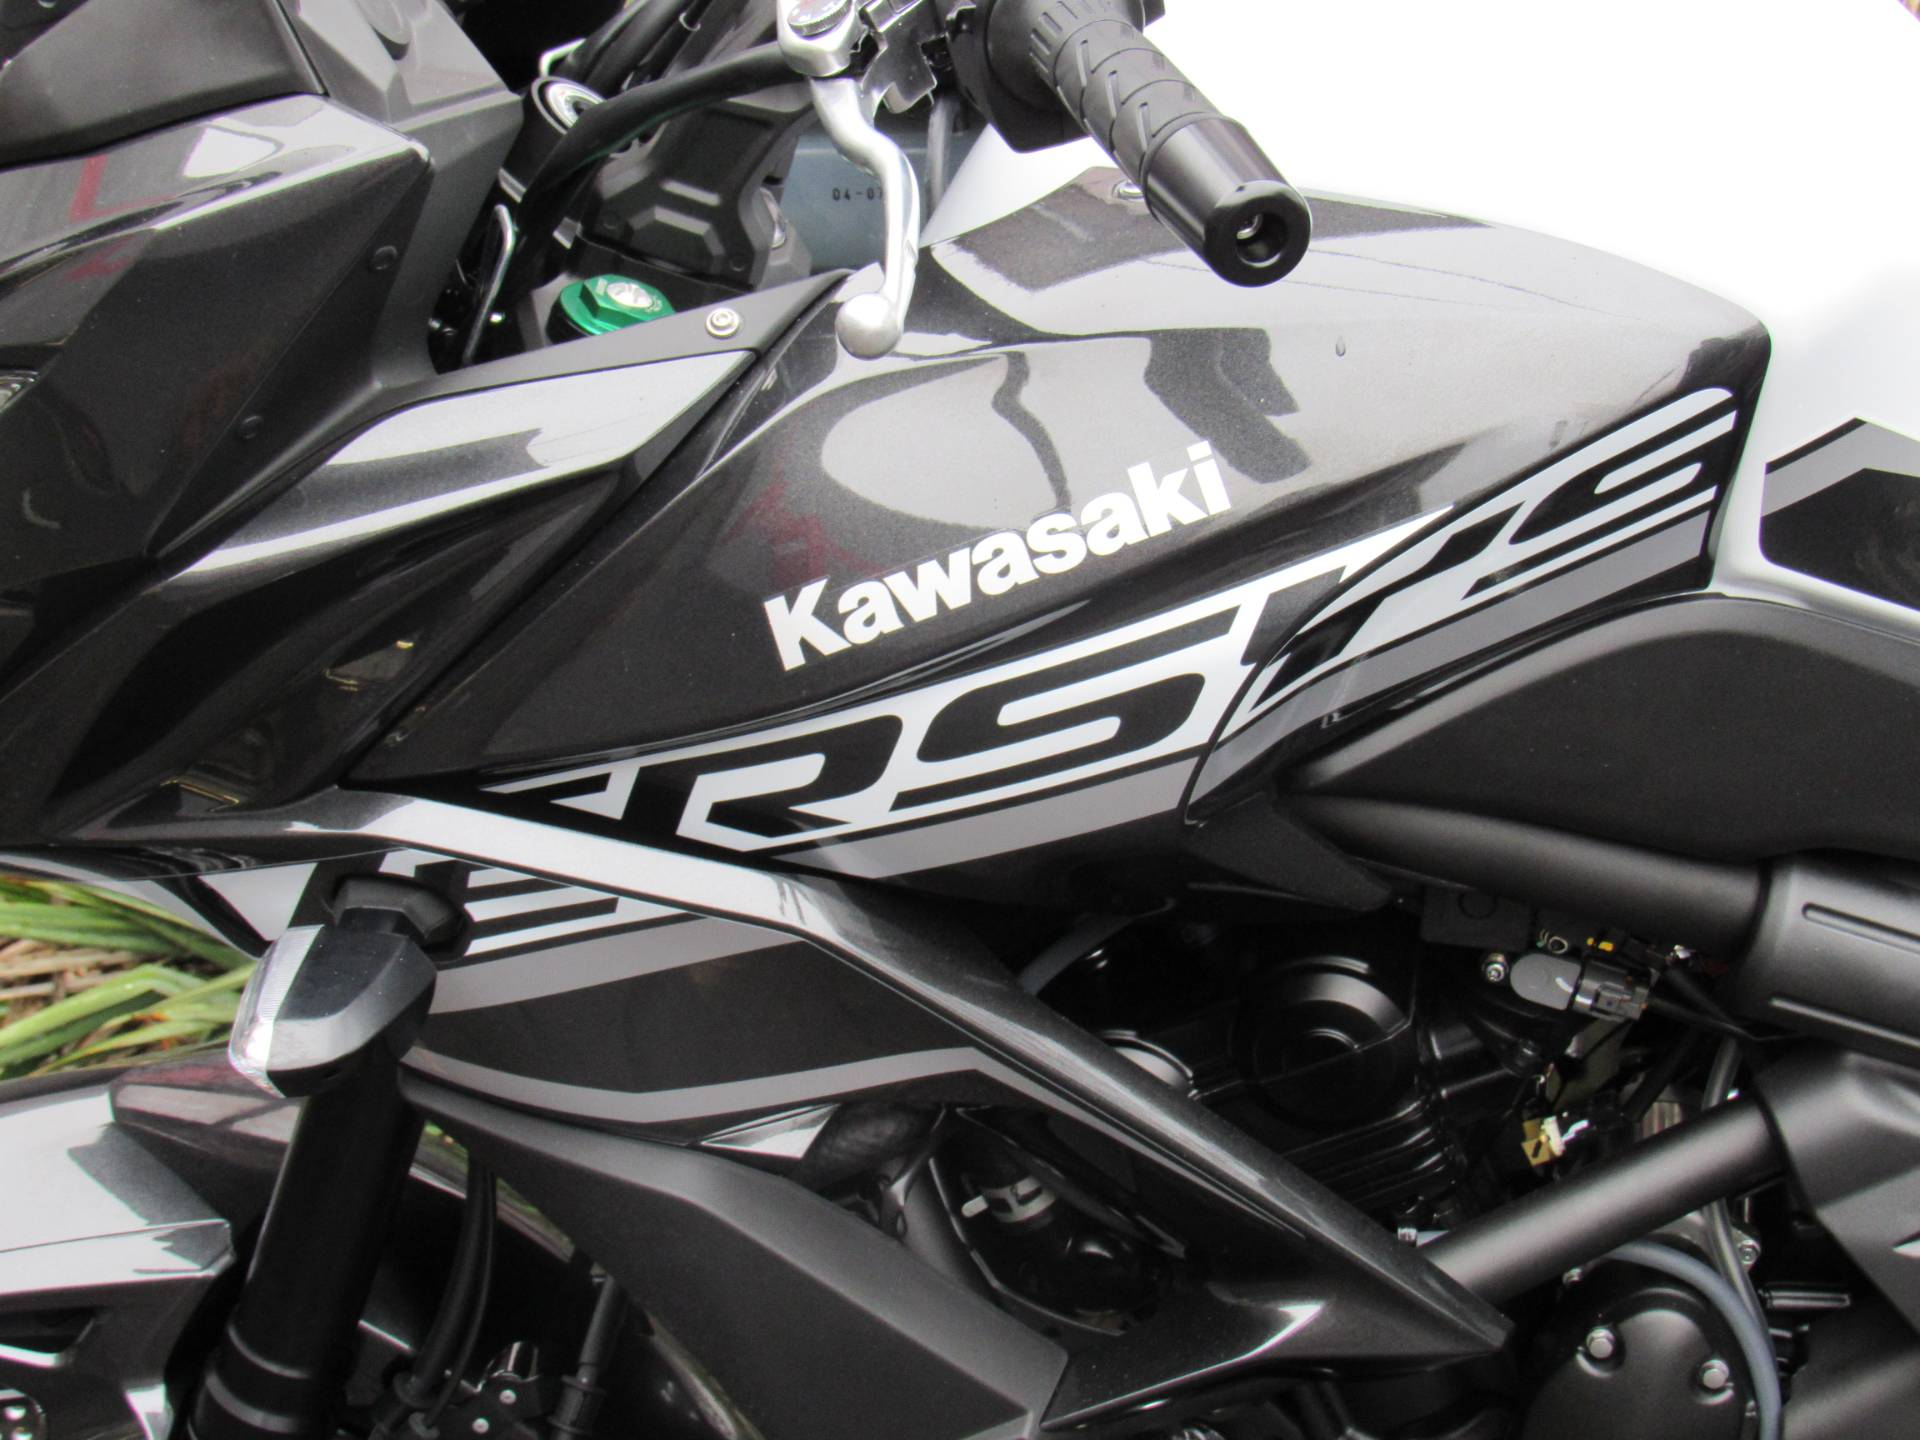 2020 Kawasaki Versys 650 LT in New Haven, Connecticut - Photo 5